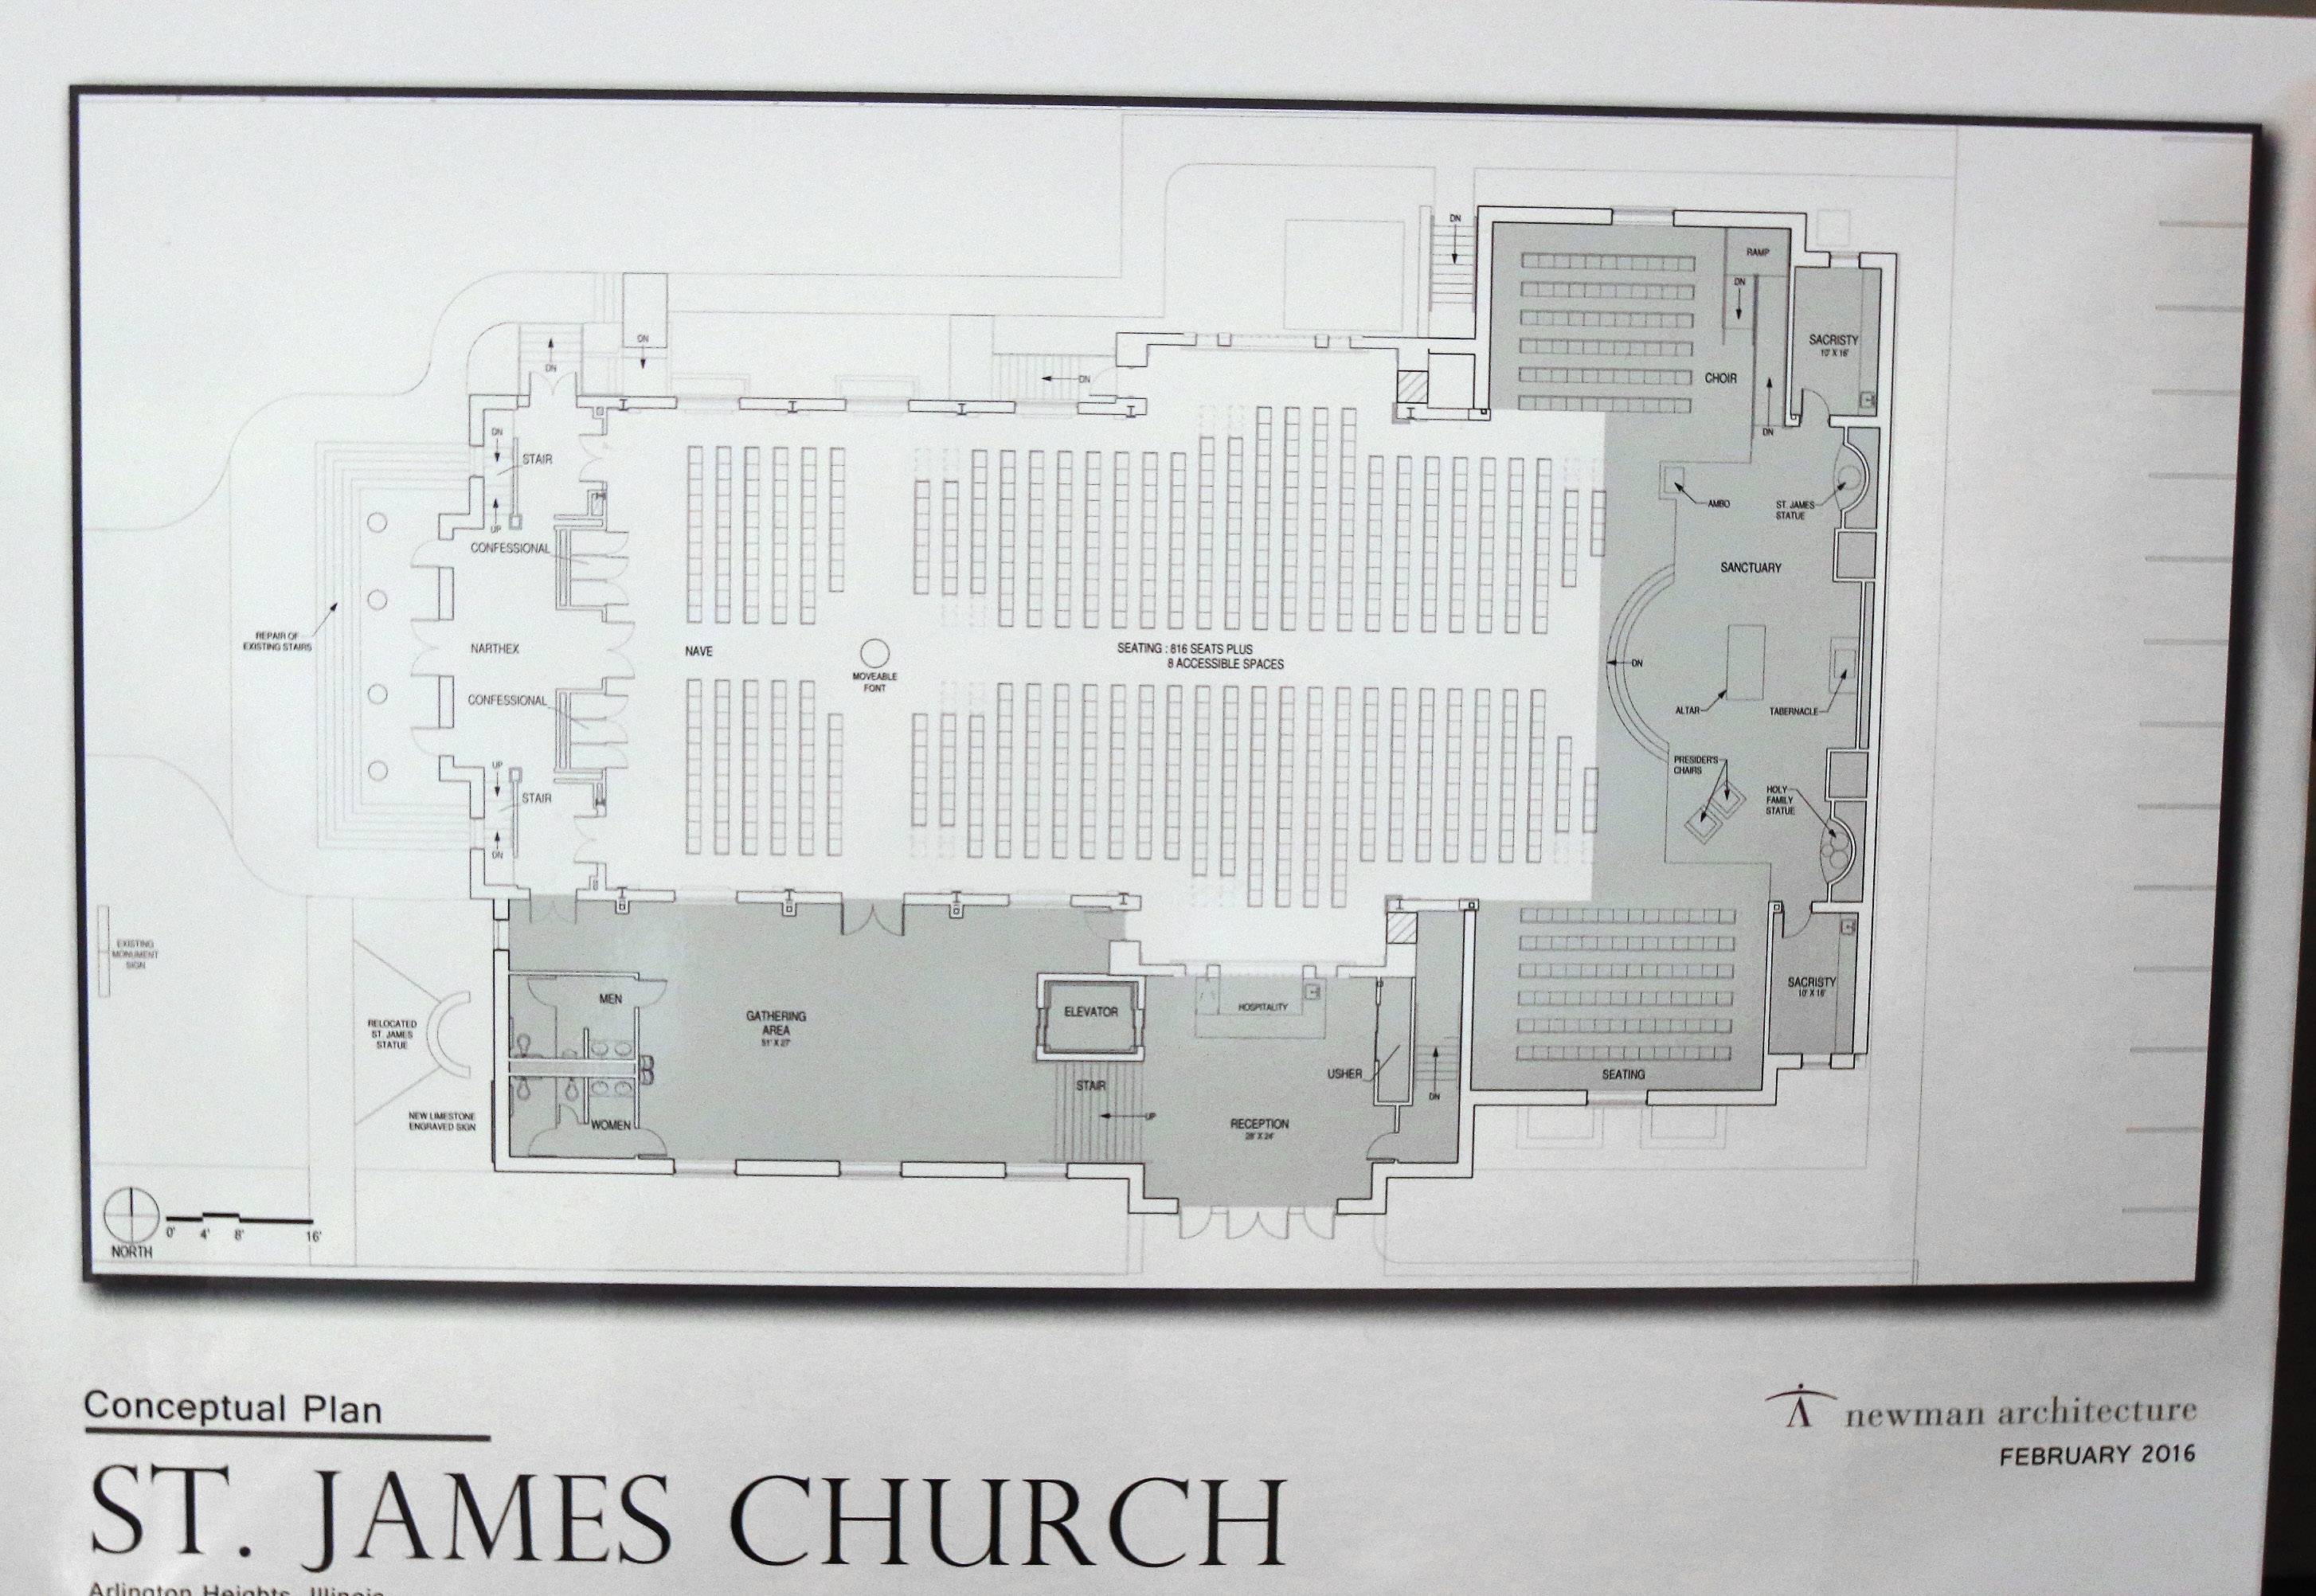 Drawing of expansion plans were shown Sunday during a groundbreaking and blessing ceremony at St. James Catholic Church in Arlington Heights.